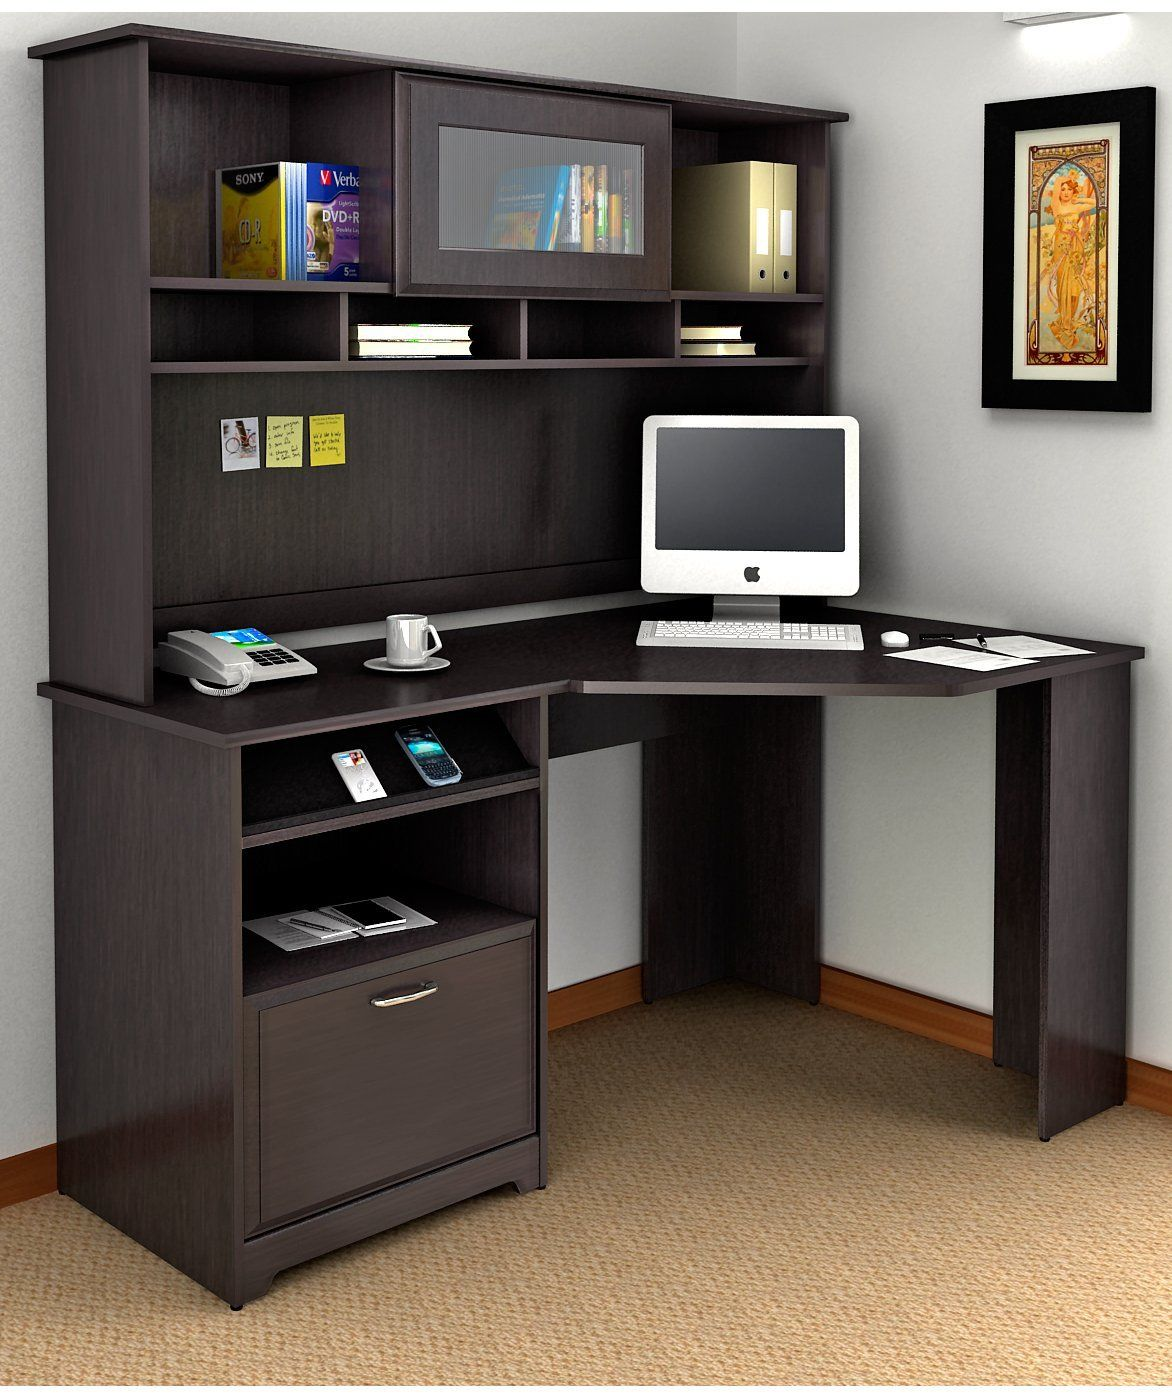 - Pin On Home Interior